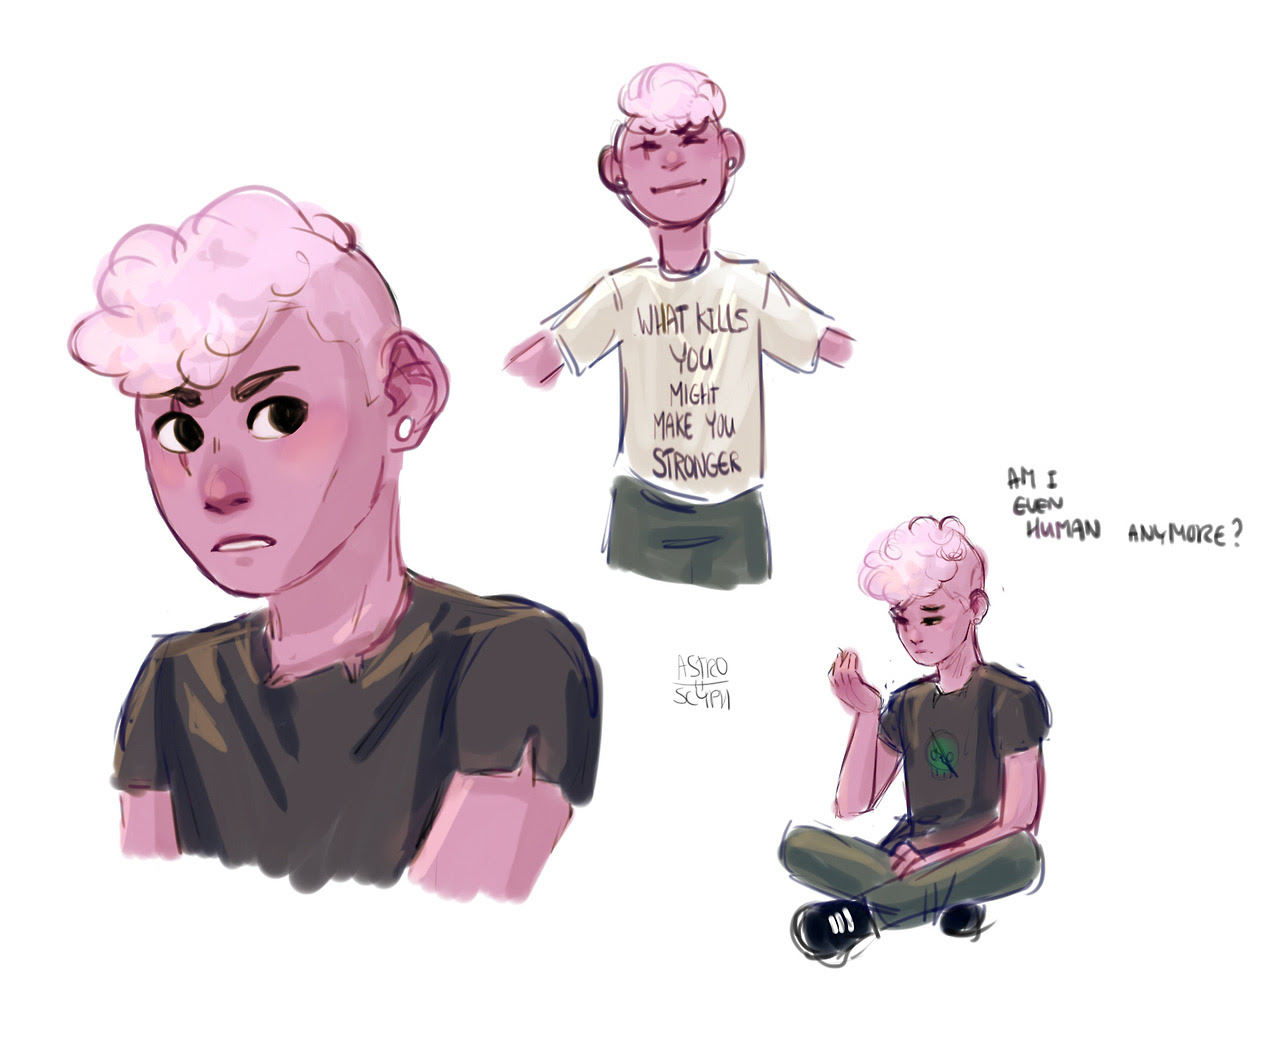 some quick lil lars doodles bc episode 28 yo, that shit gave me feels